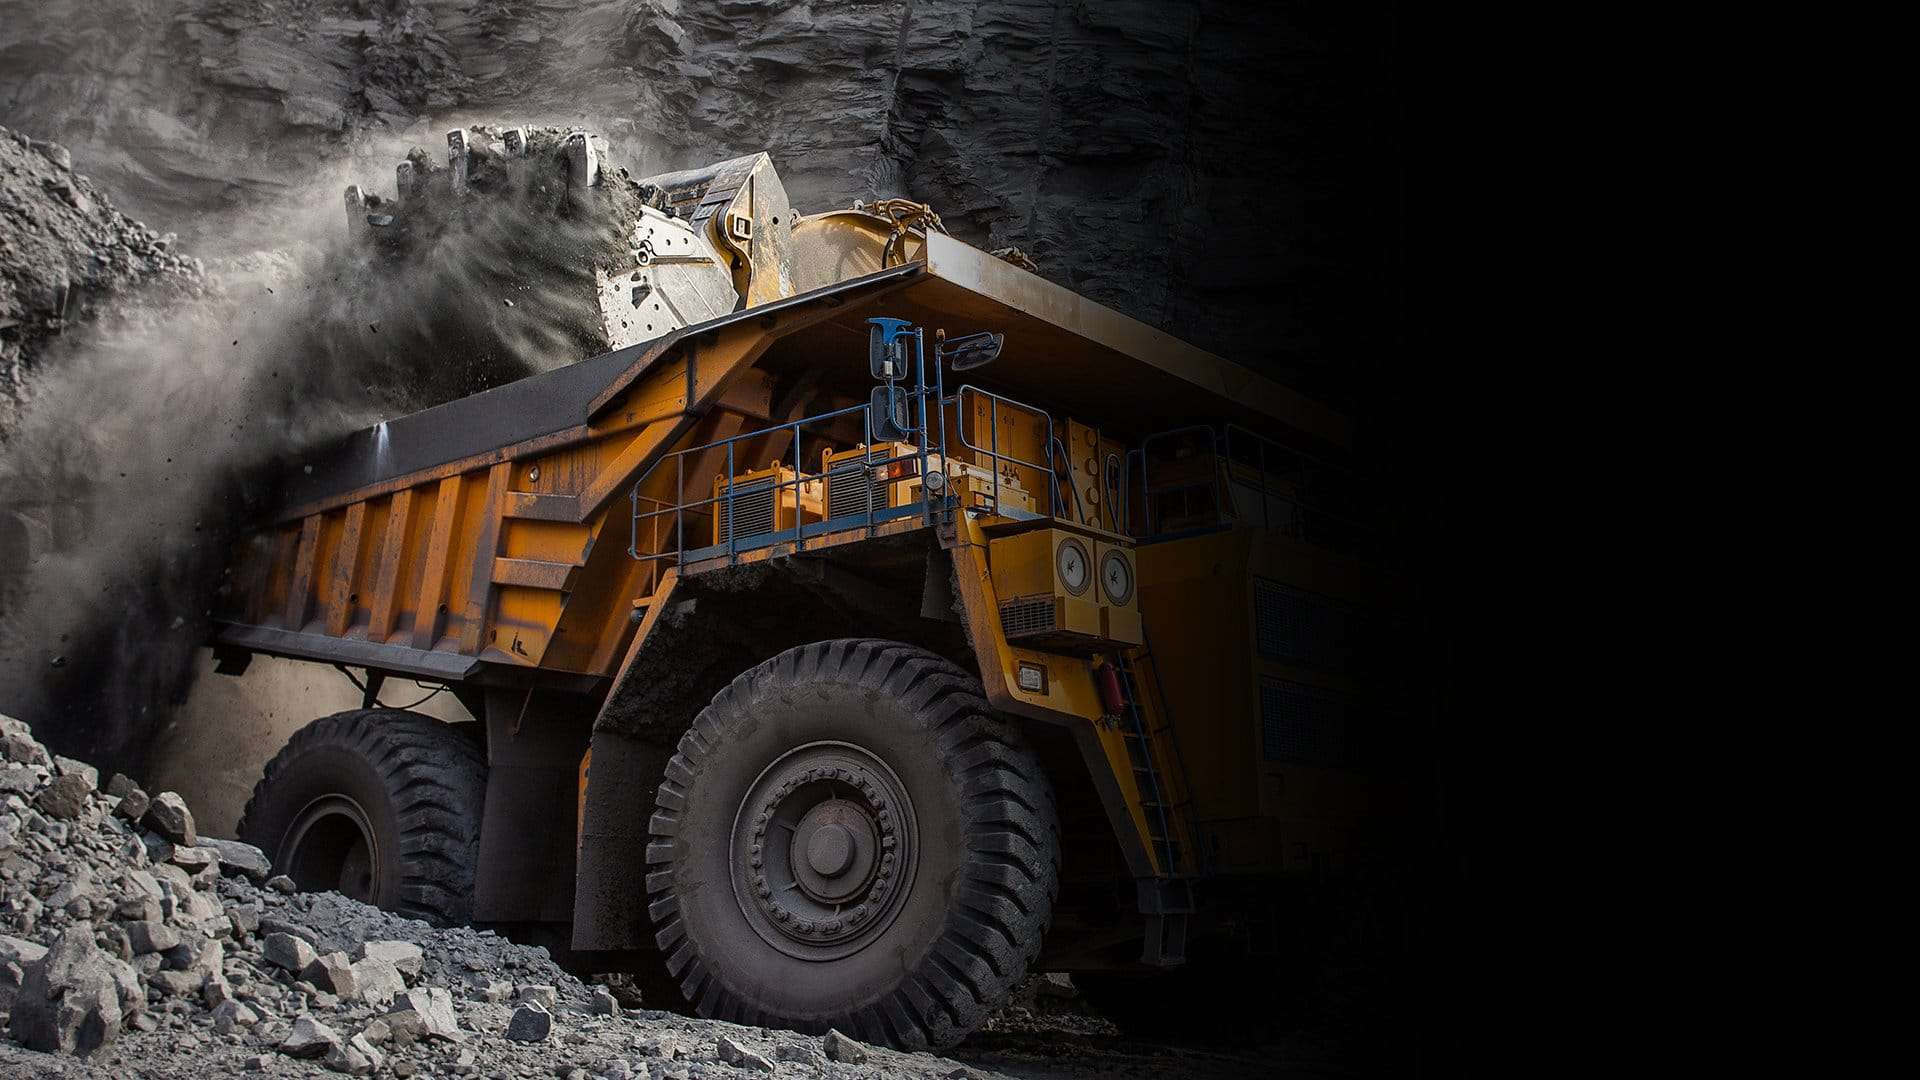 Mining vehicle hauling a heavy load, fire suppression systems